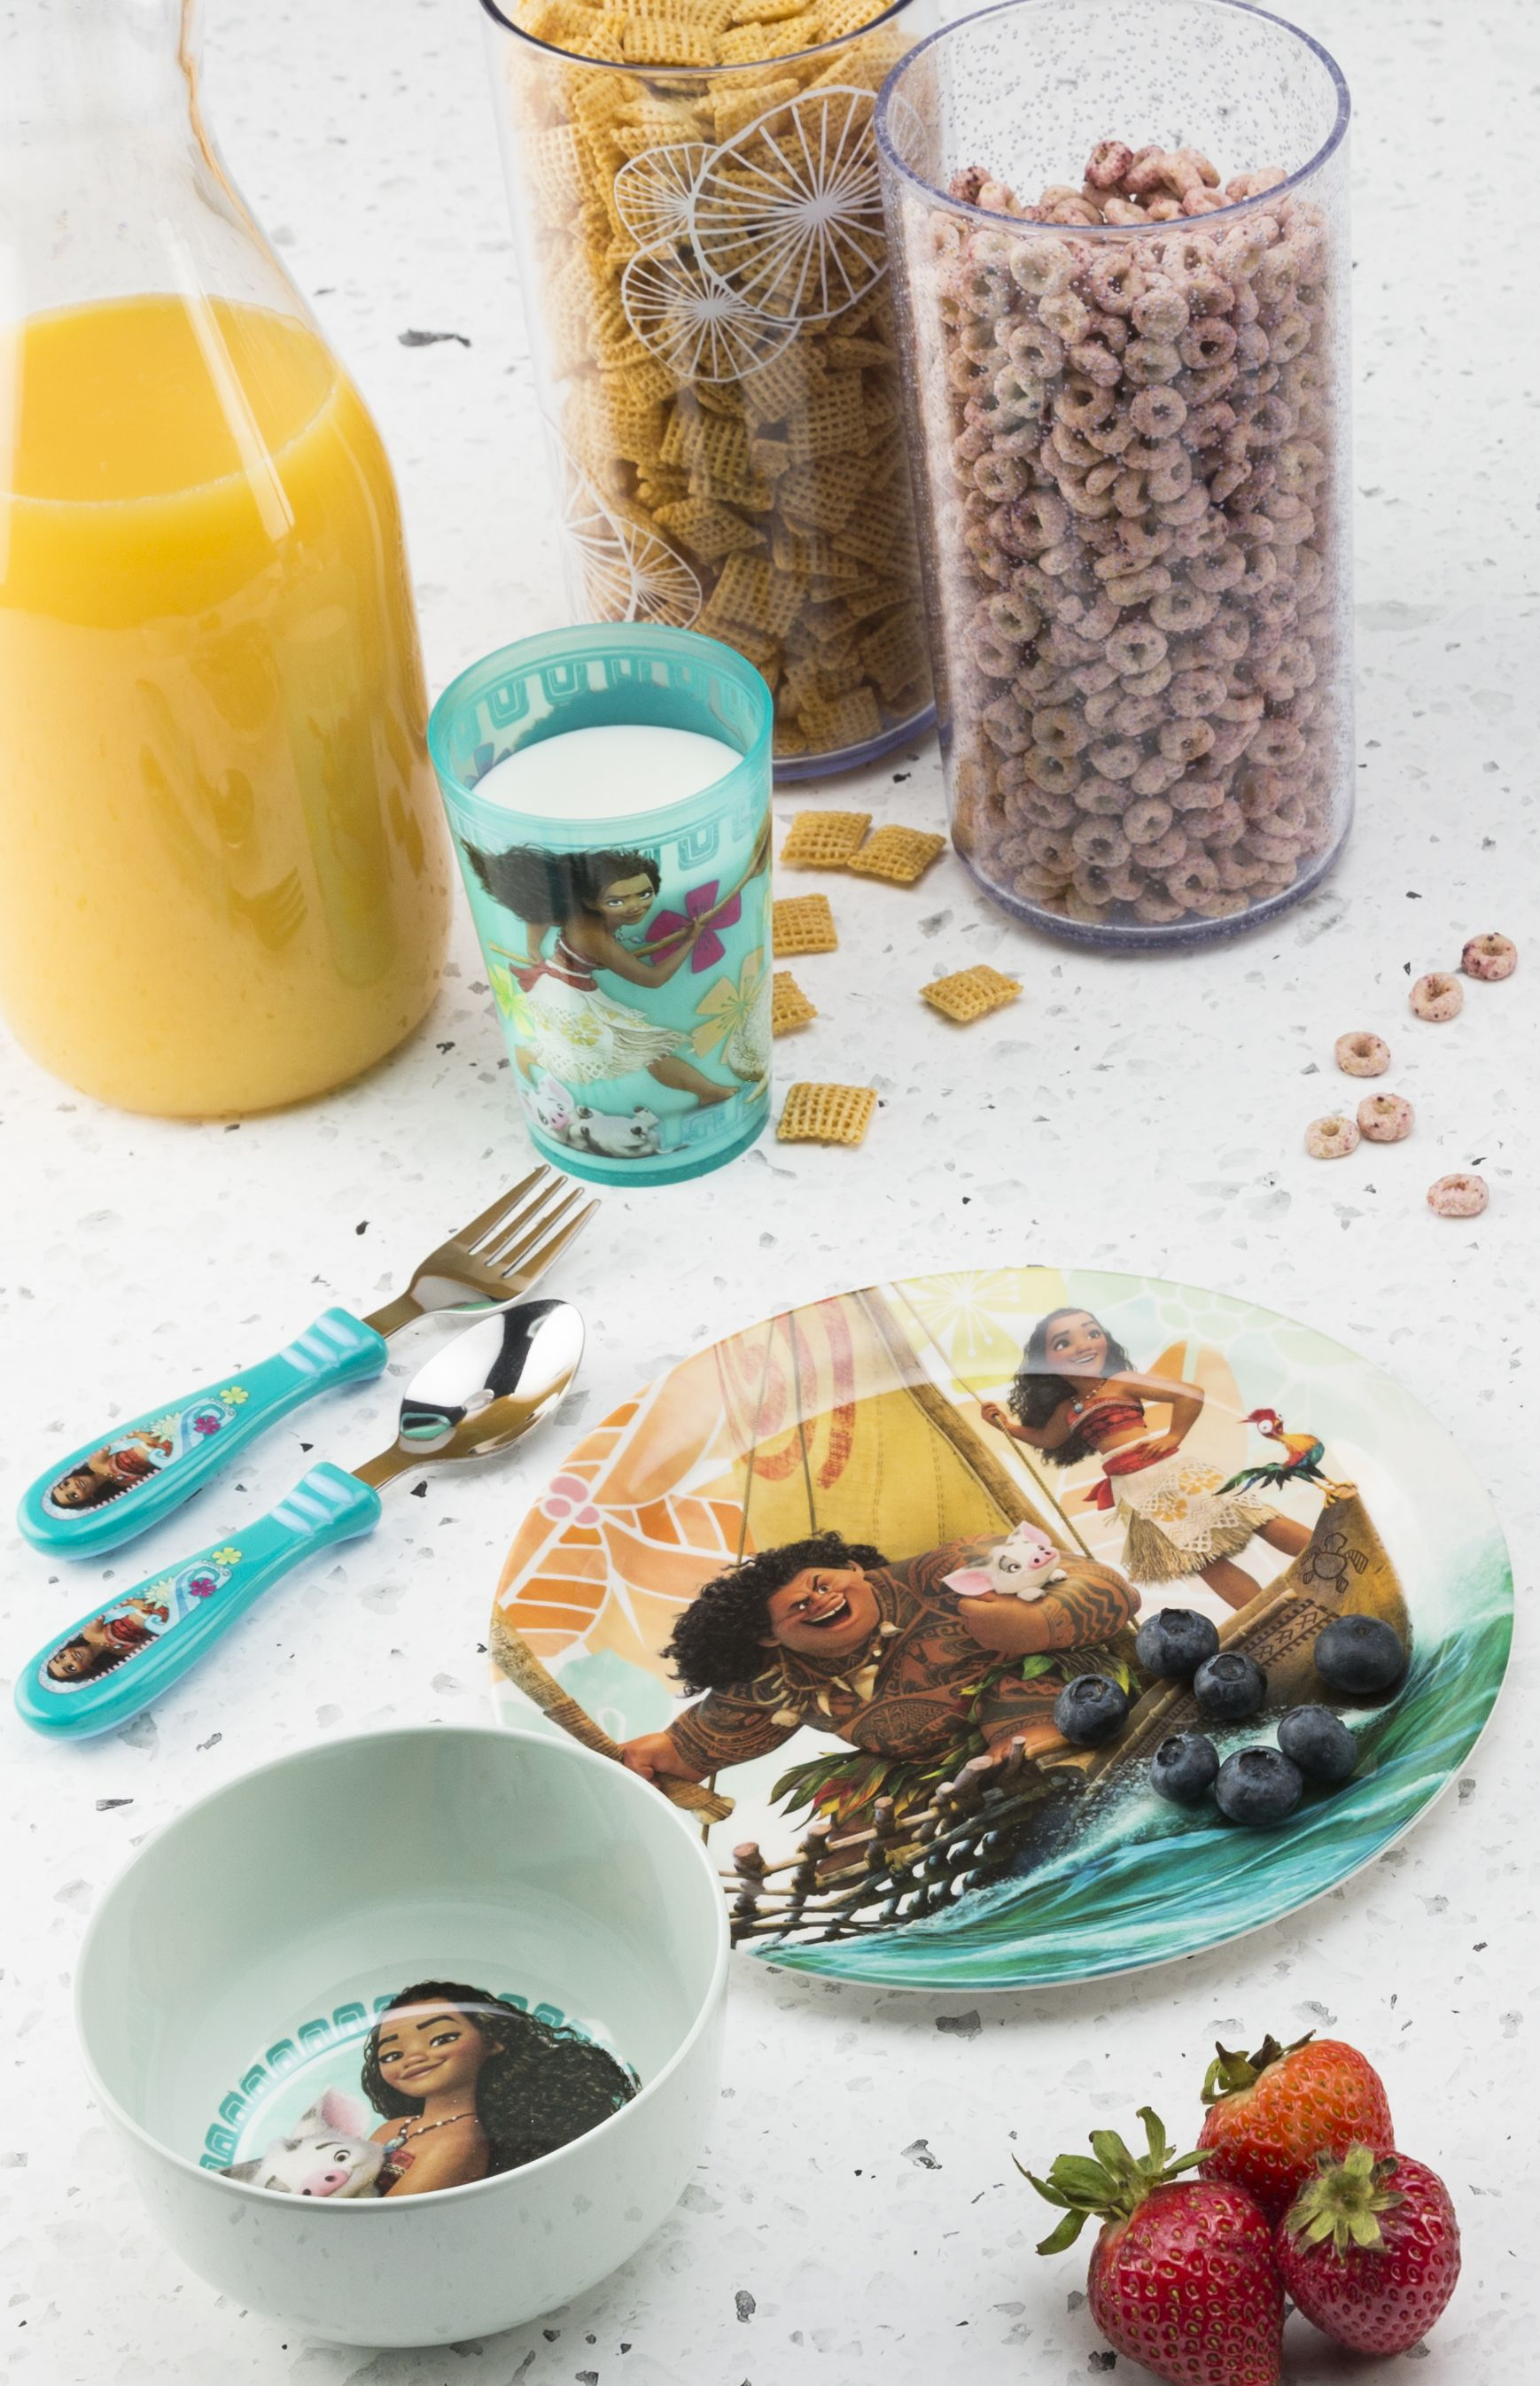 Disney Moana dishes and a balanced breakfast will give